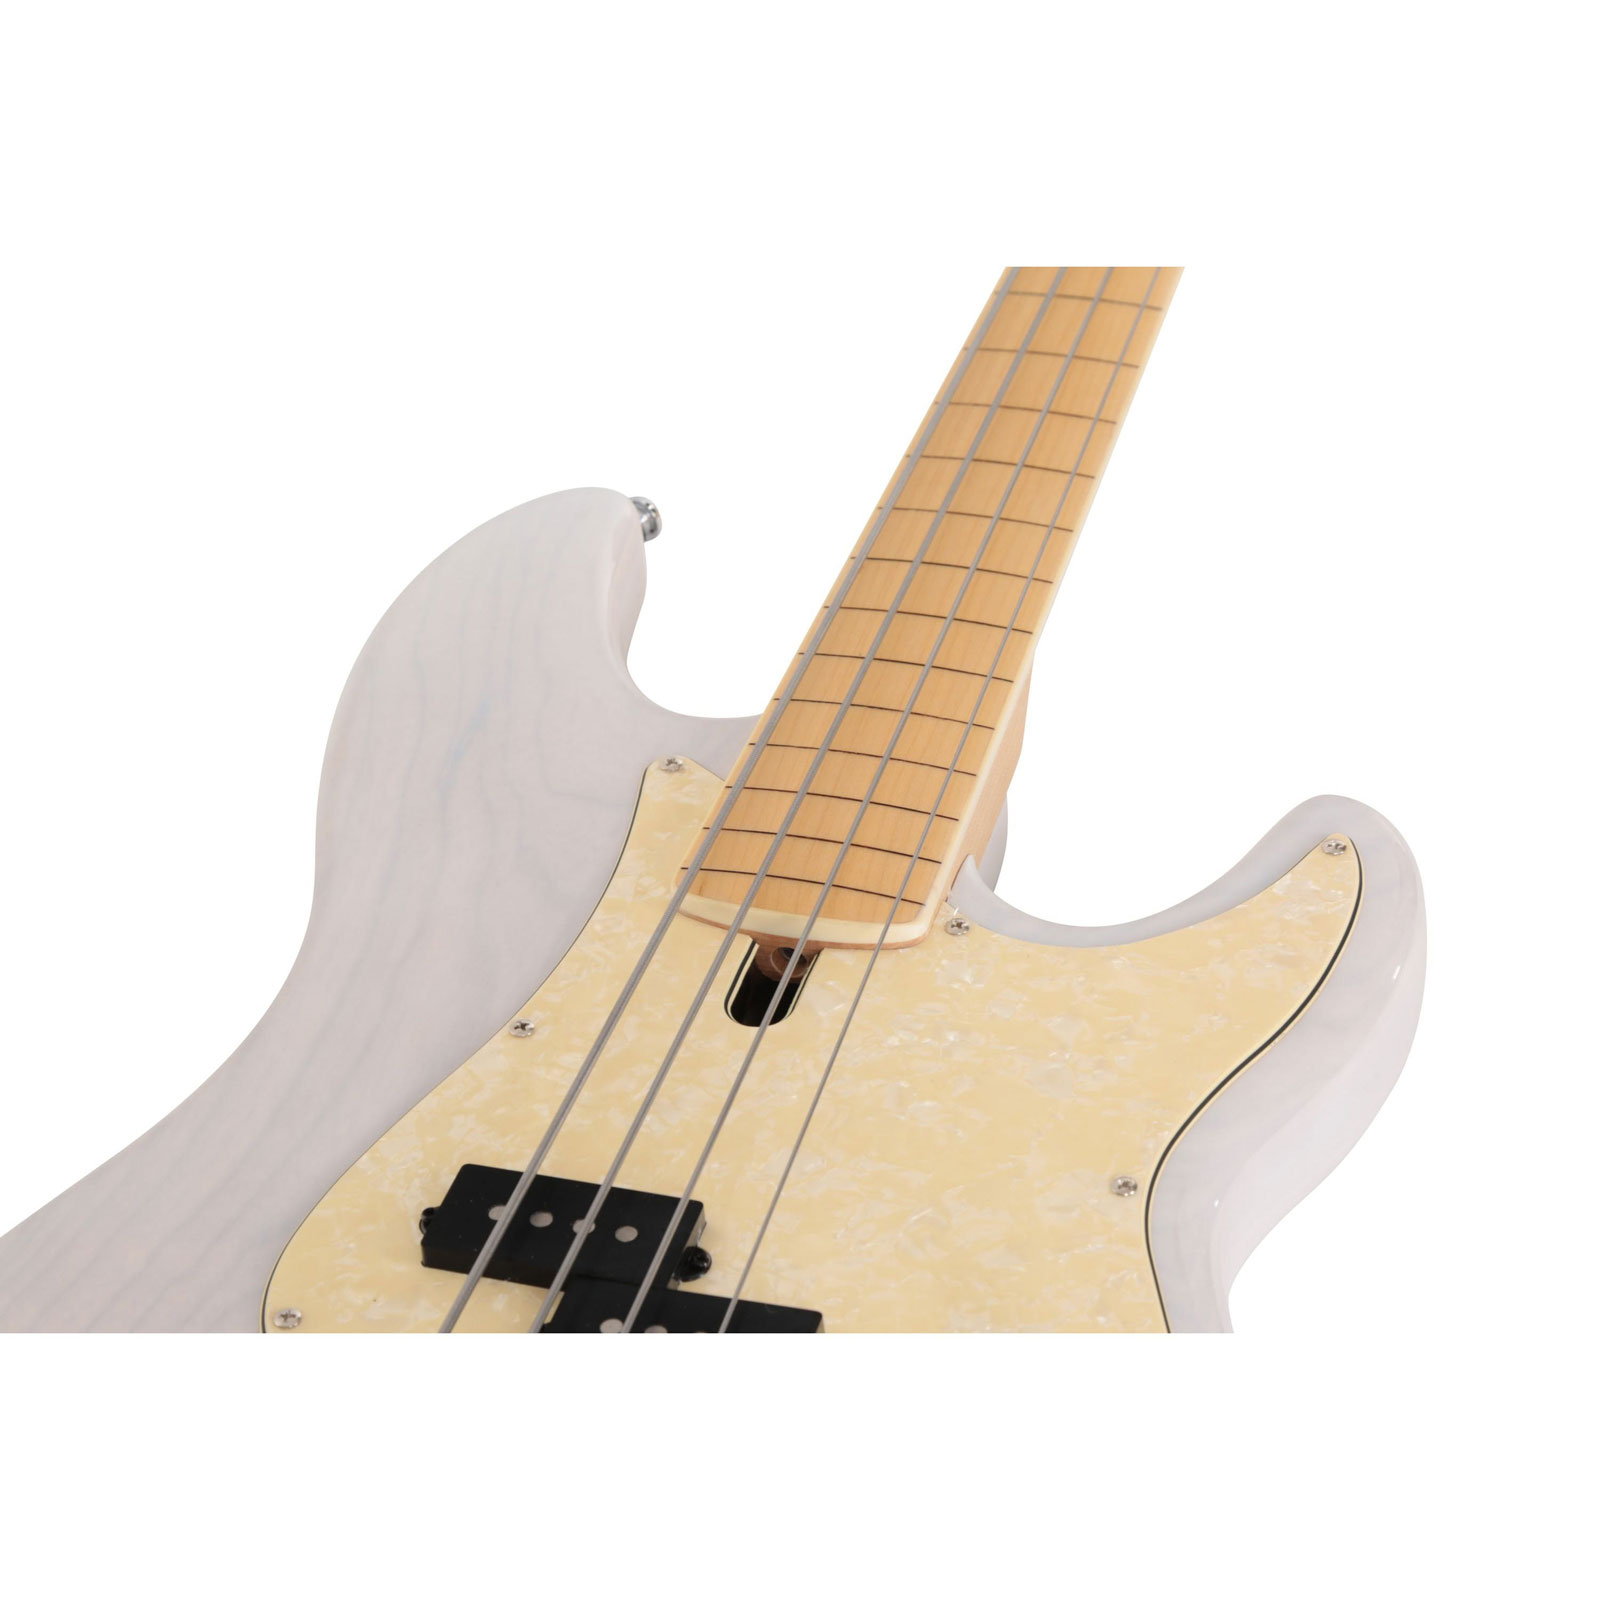 P7 SWAMP ASH - 4 FL WB MN FRETLESS ANTIQUE WHITE